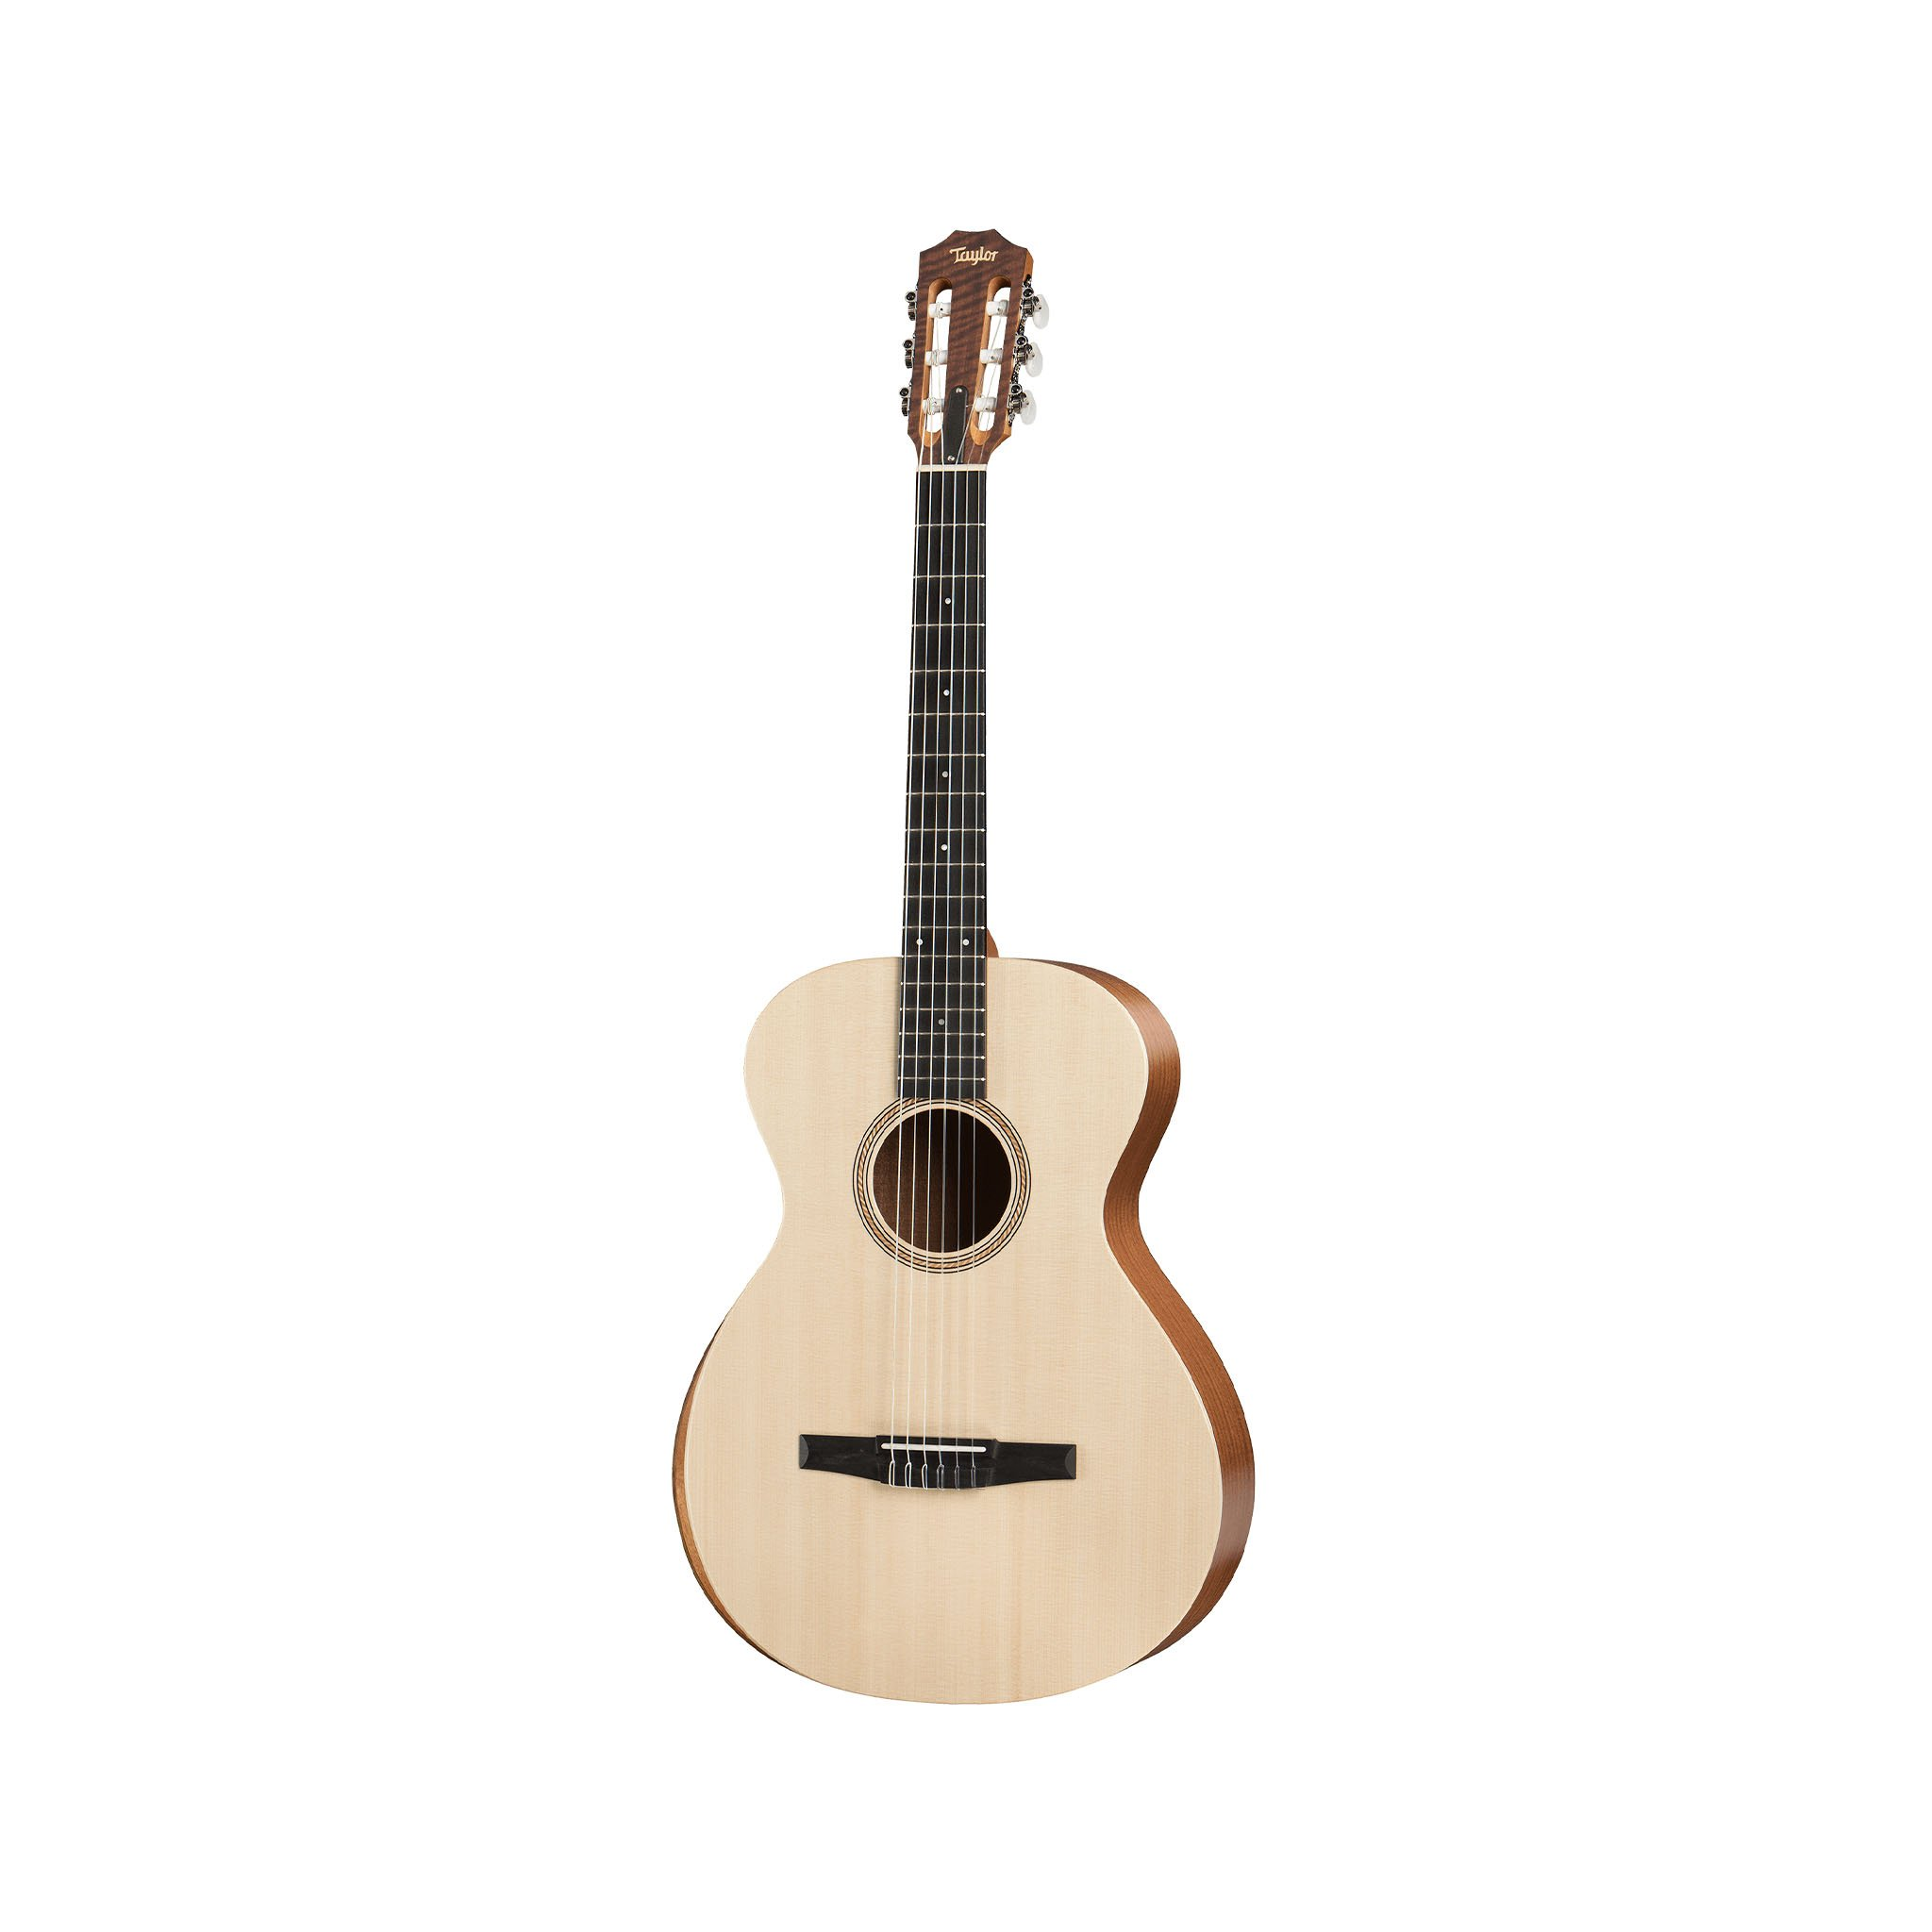 Taylor Academy 12-N Grand Concert Nylon-String Acoustic Guitar w